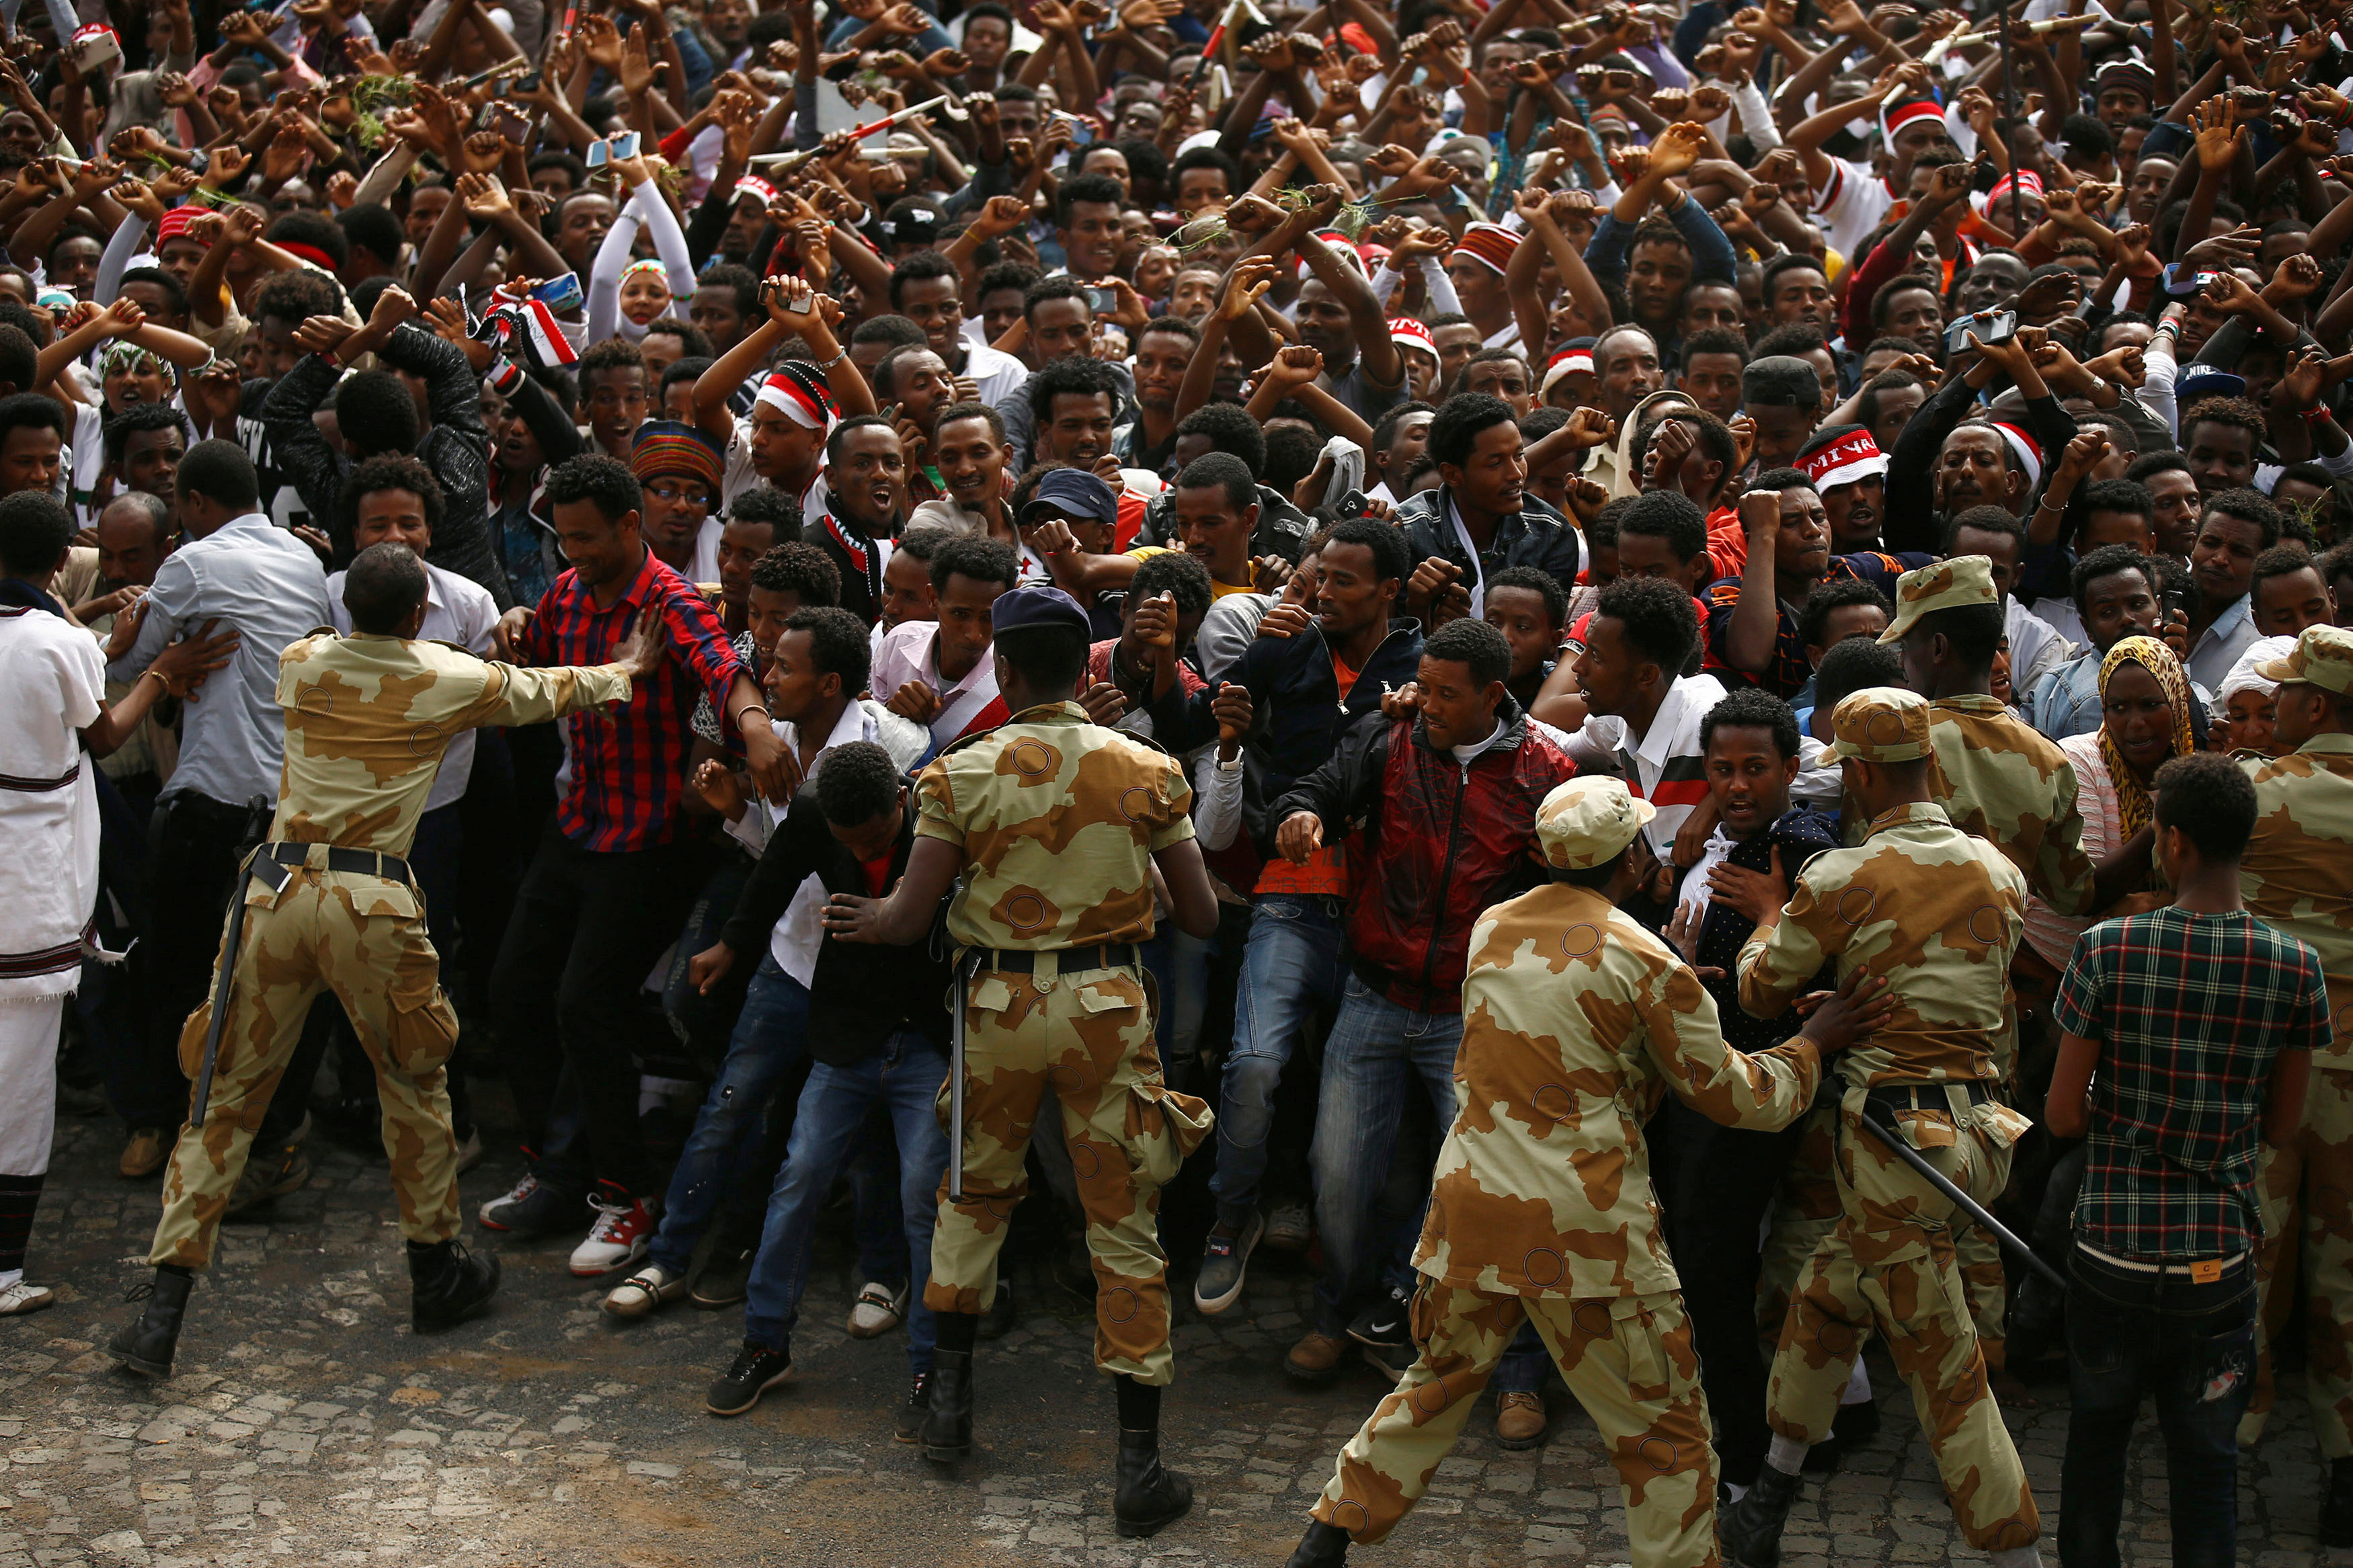 Africa in the news: Stampede reignites Ethiopia unrest, major gas